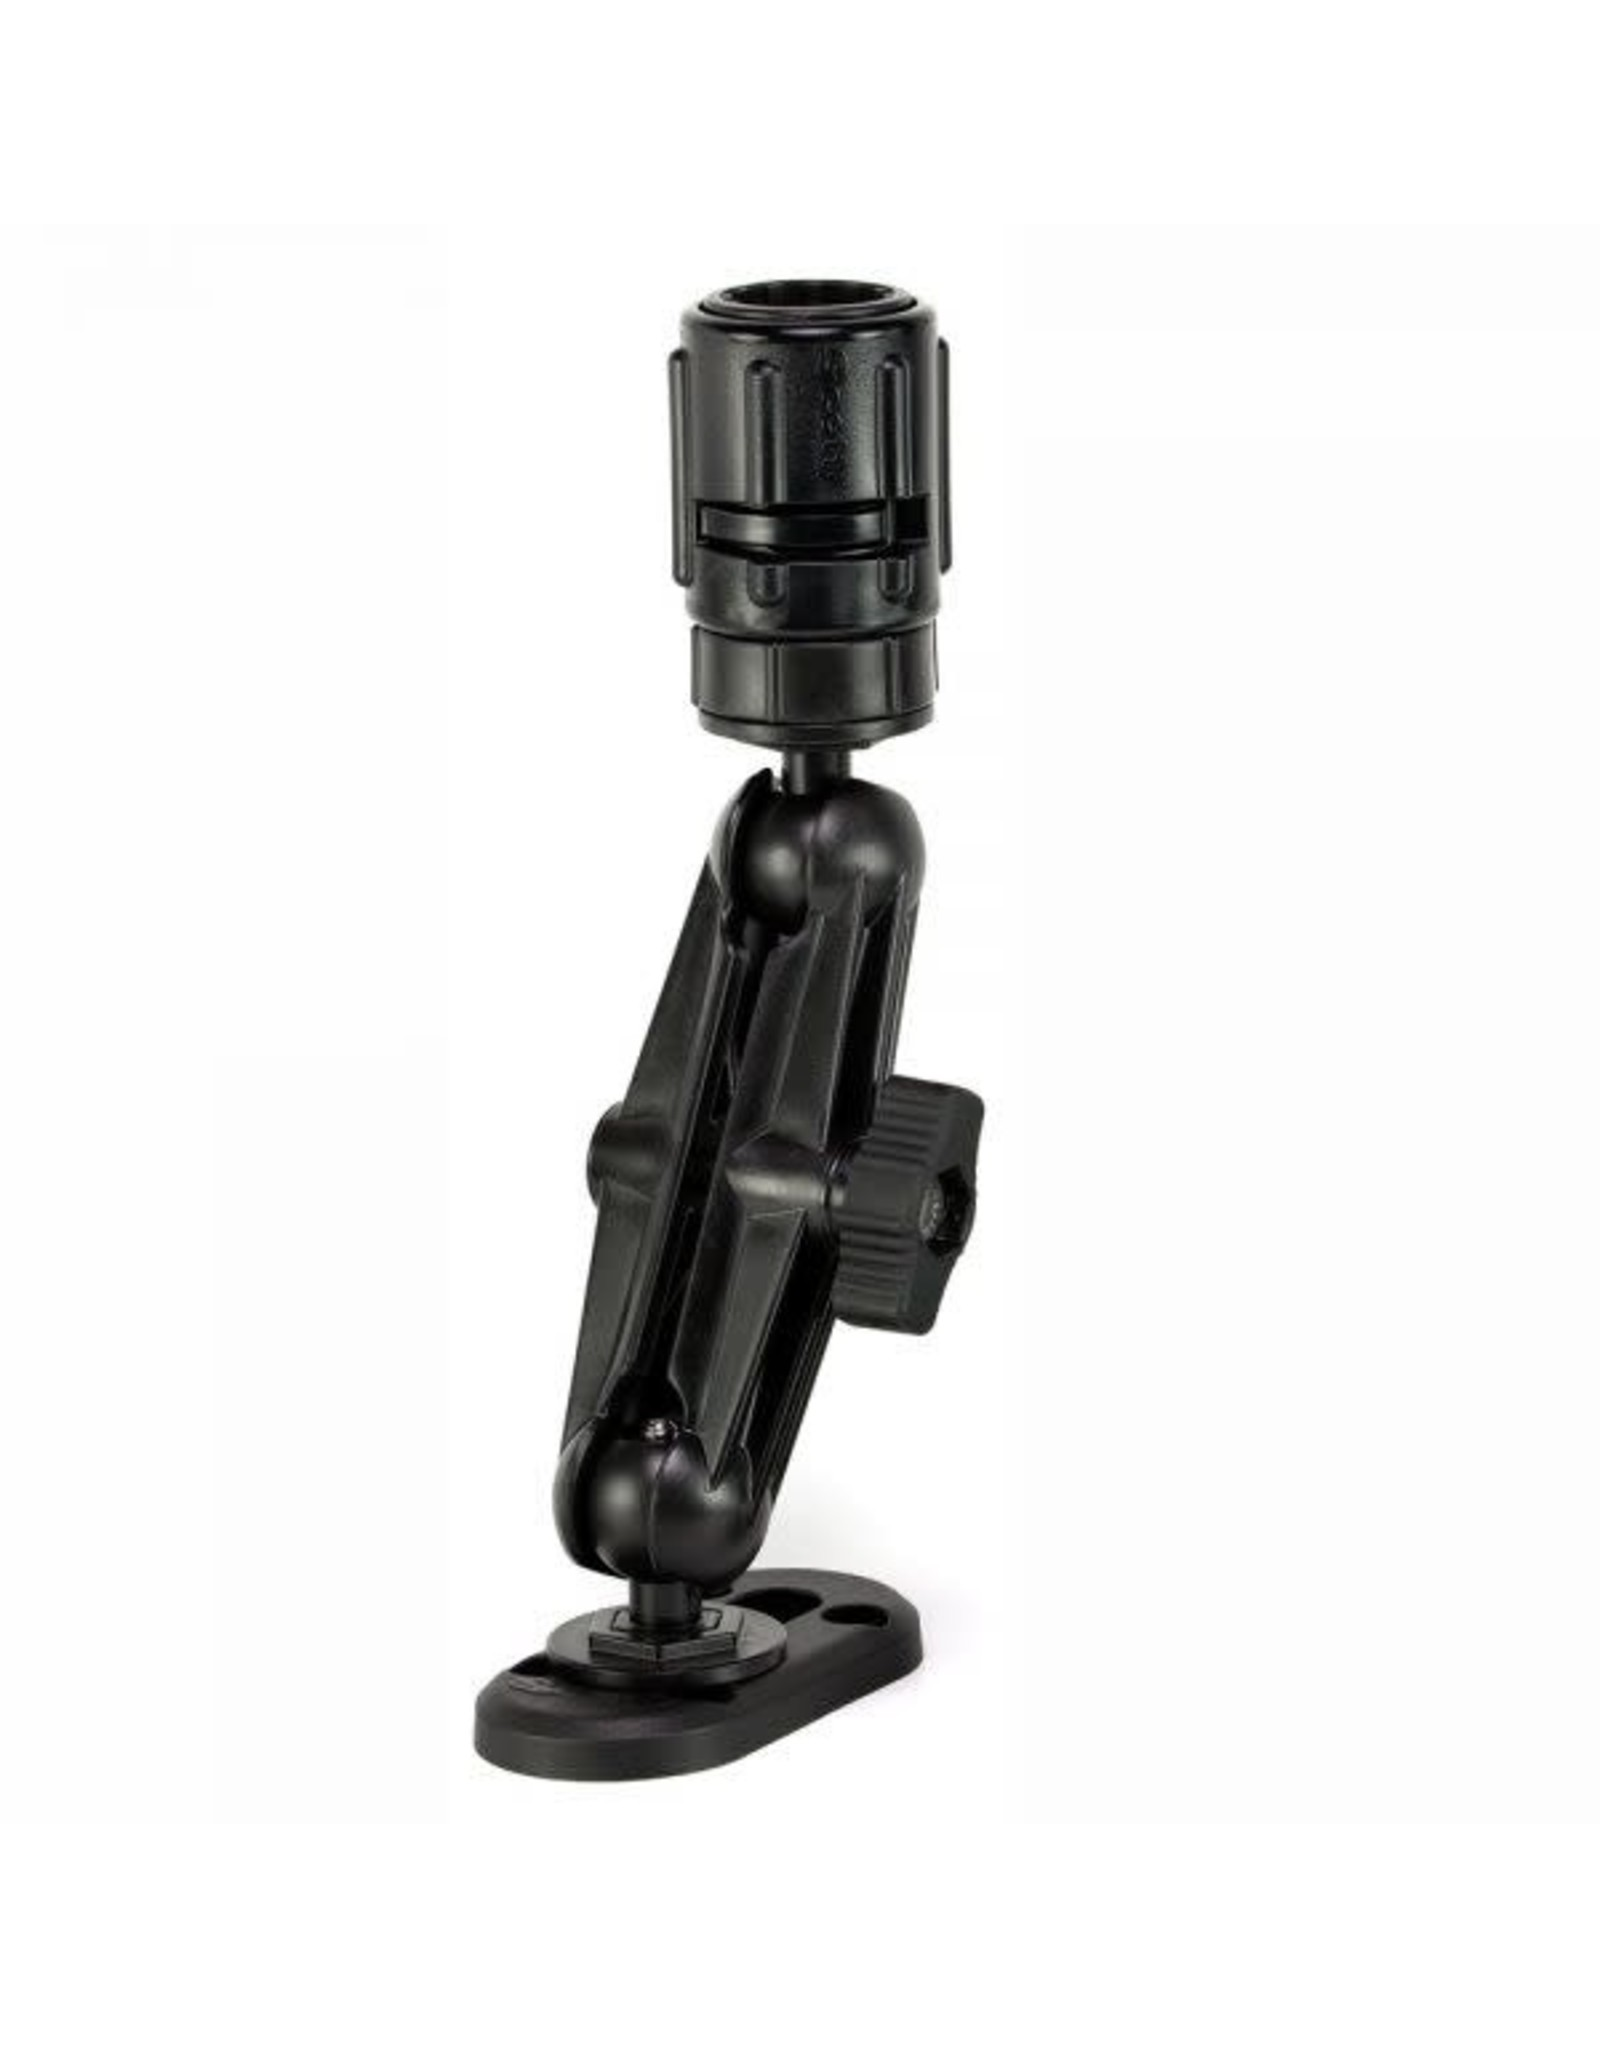 Scotty Scotty Ball mounting system with gear-head and track